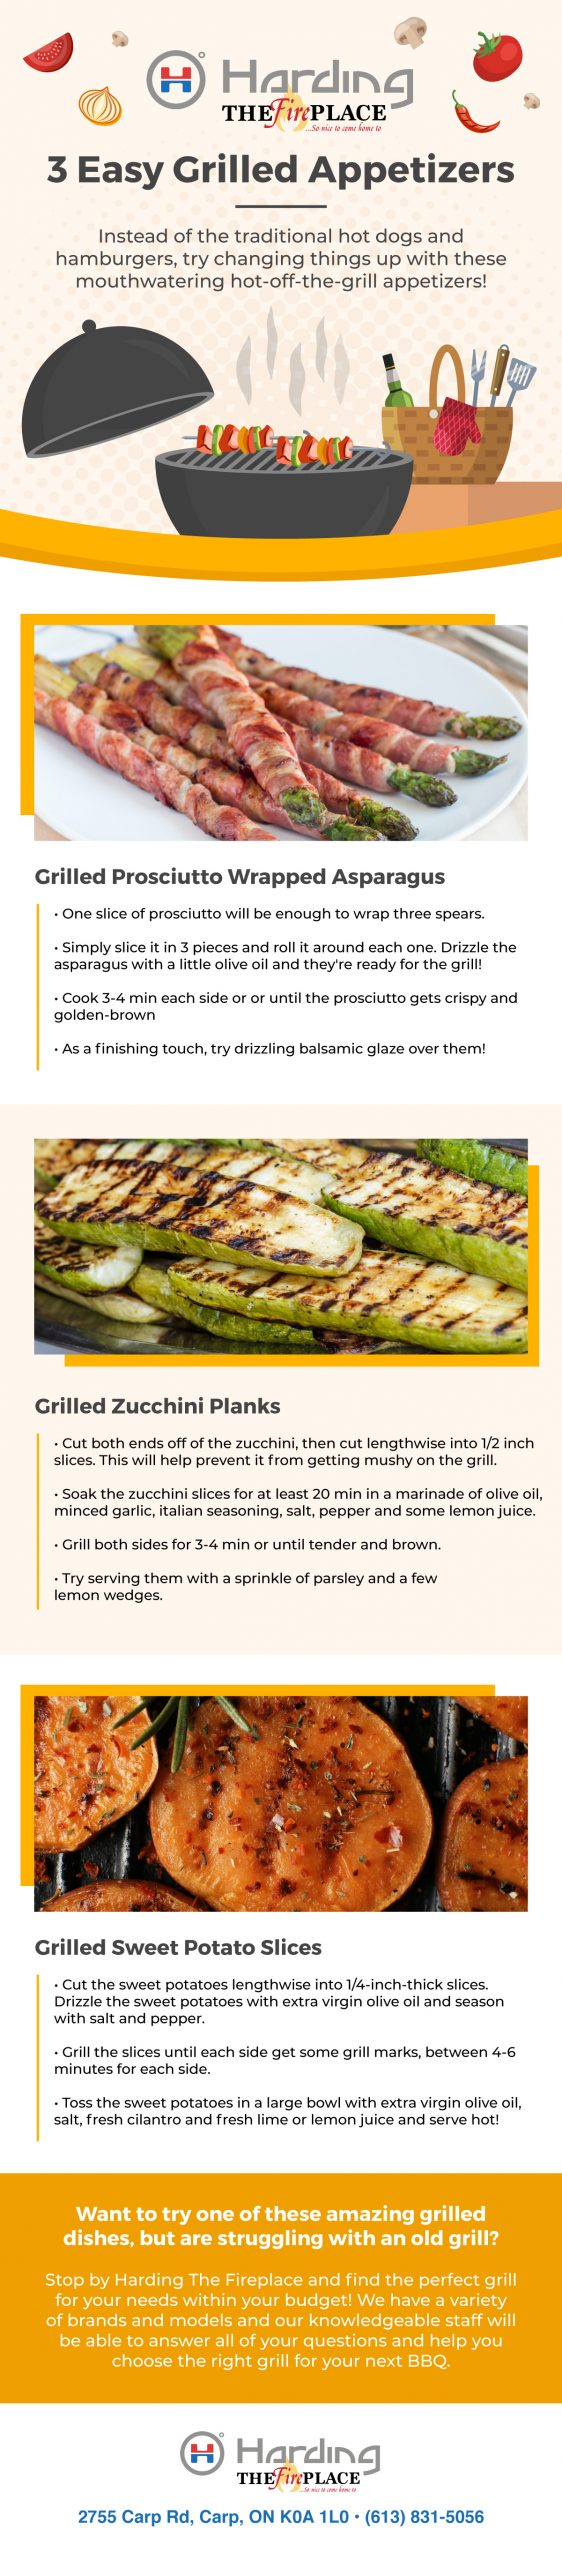 grilled appetizers